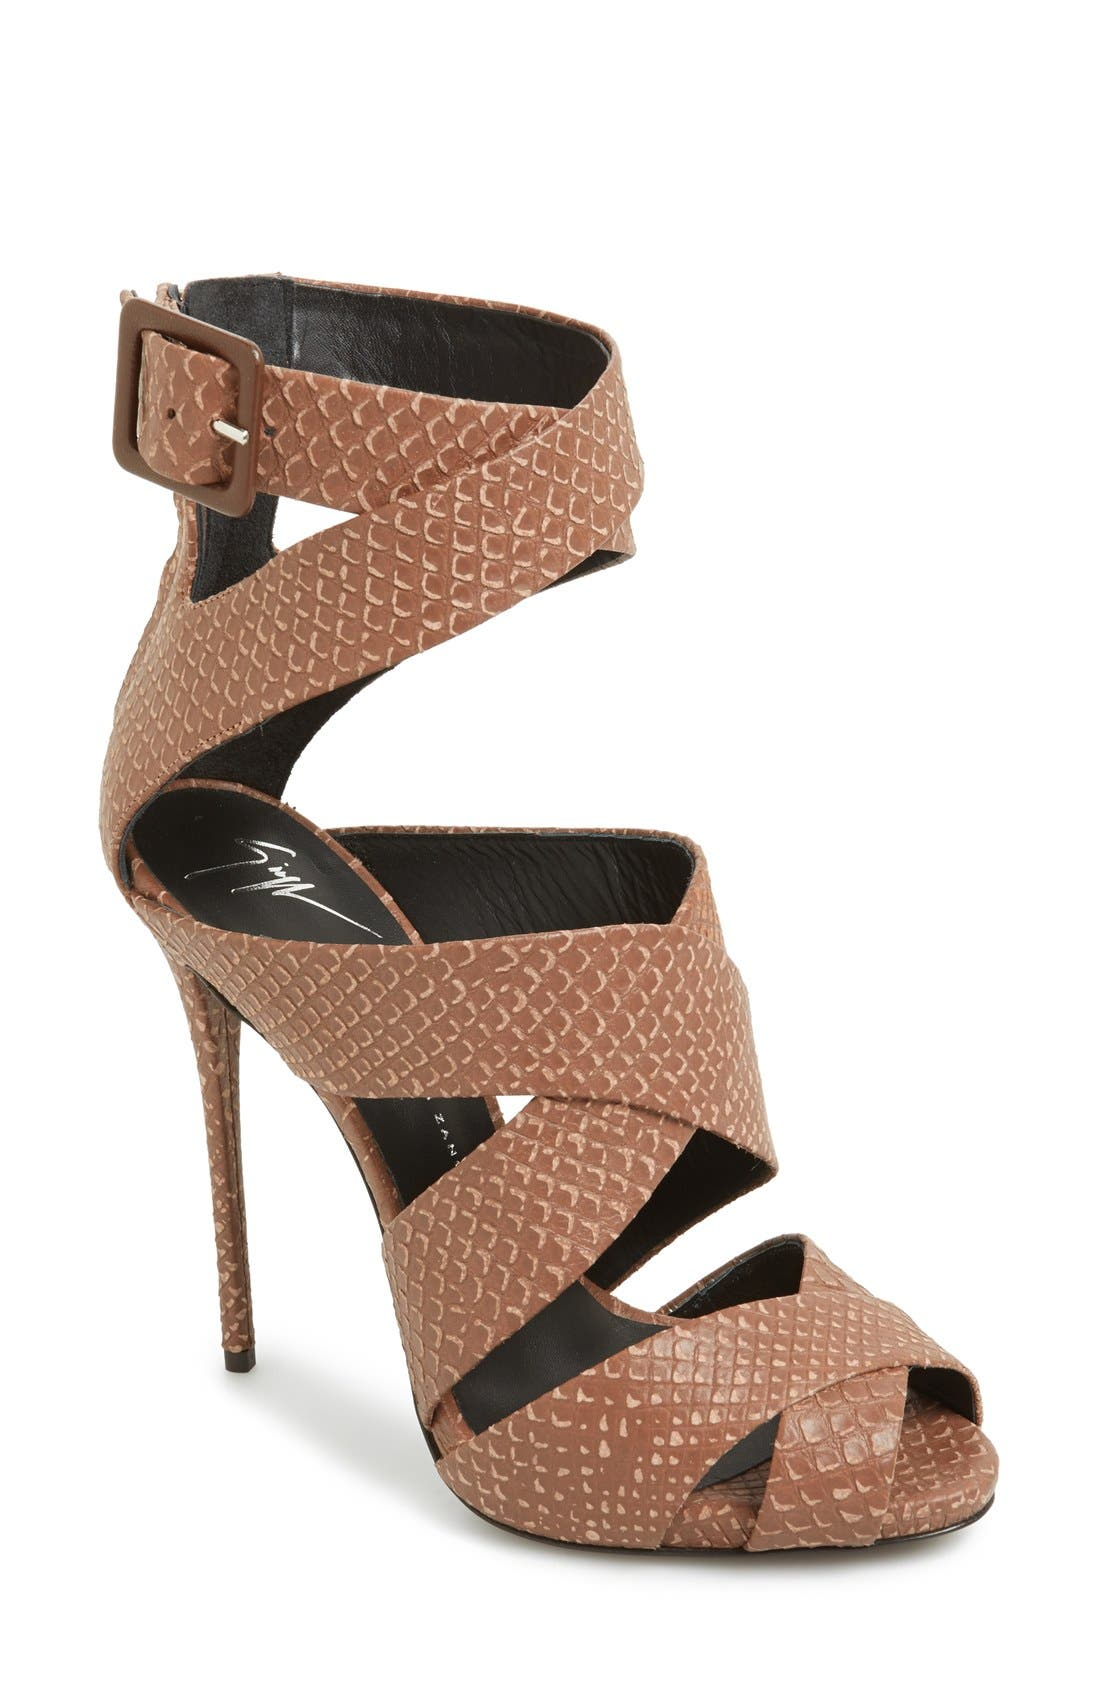 Main Image - Giuseppe Zanotti 'Coline' Snake Embossed Leather Sandal (Women)